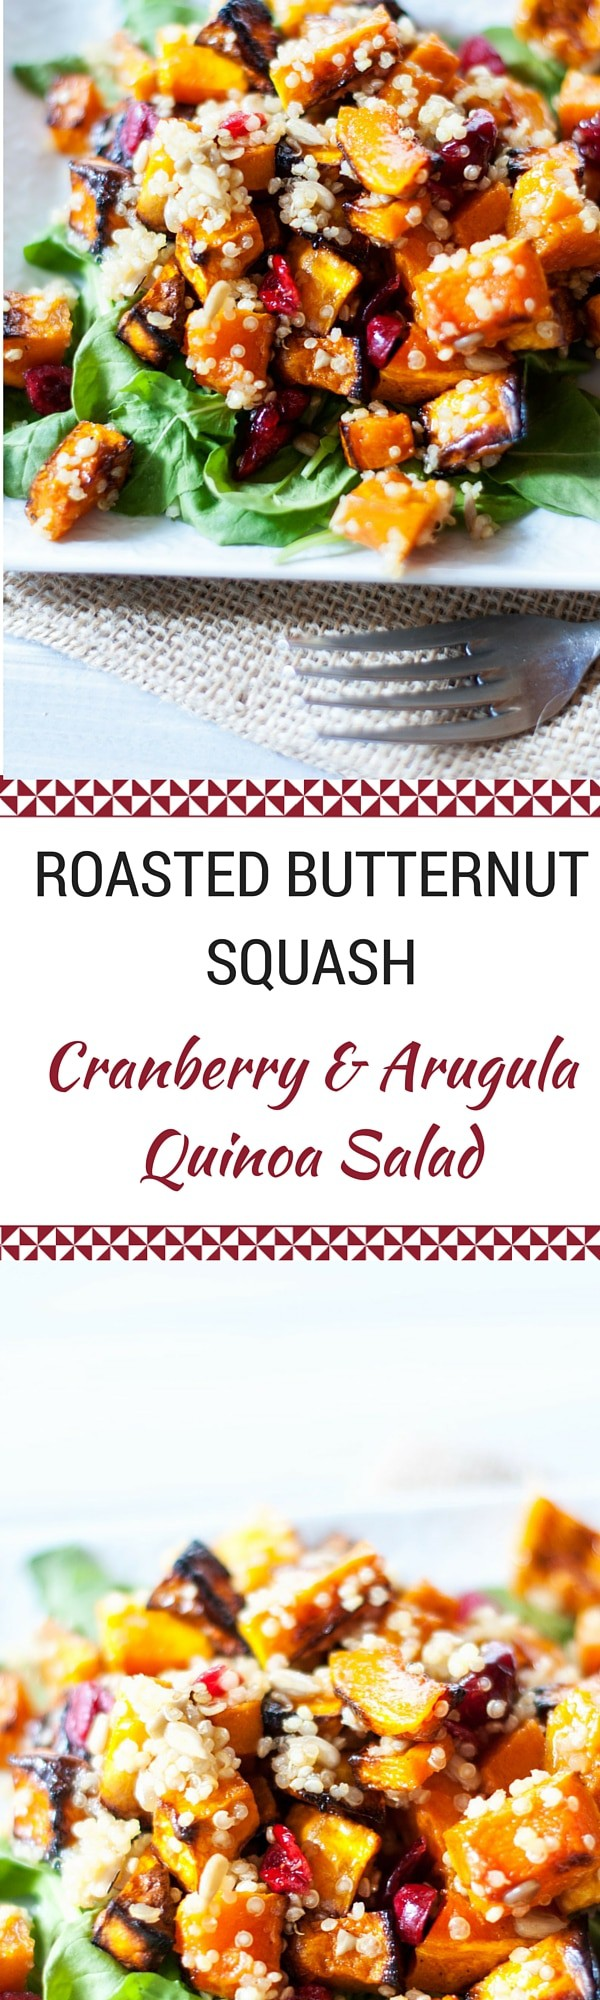 Roasted Butternut Squash Cranberry & Arugula Quinoa Salad